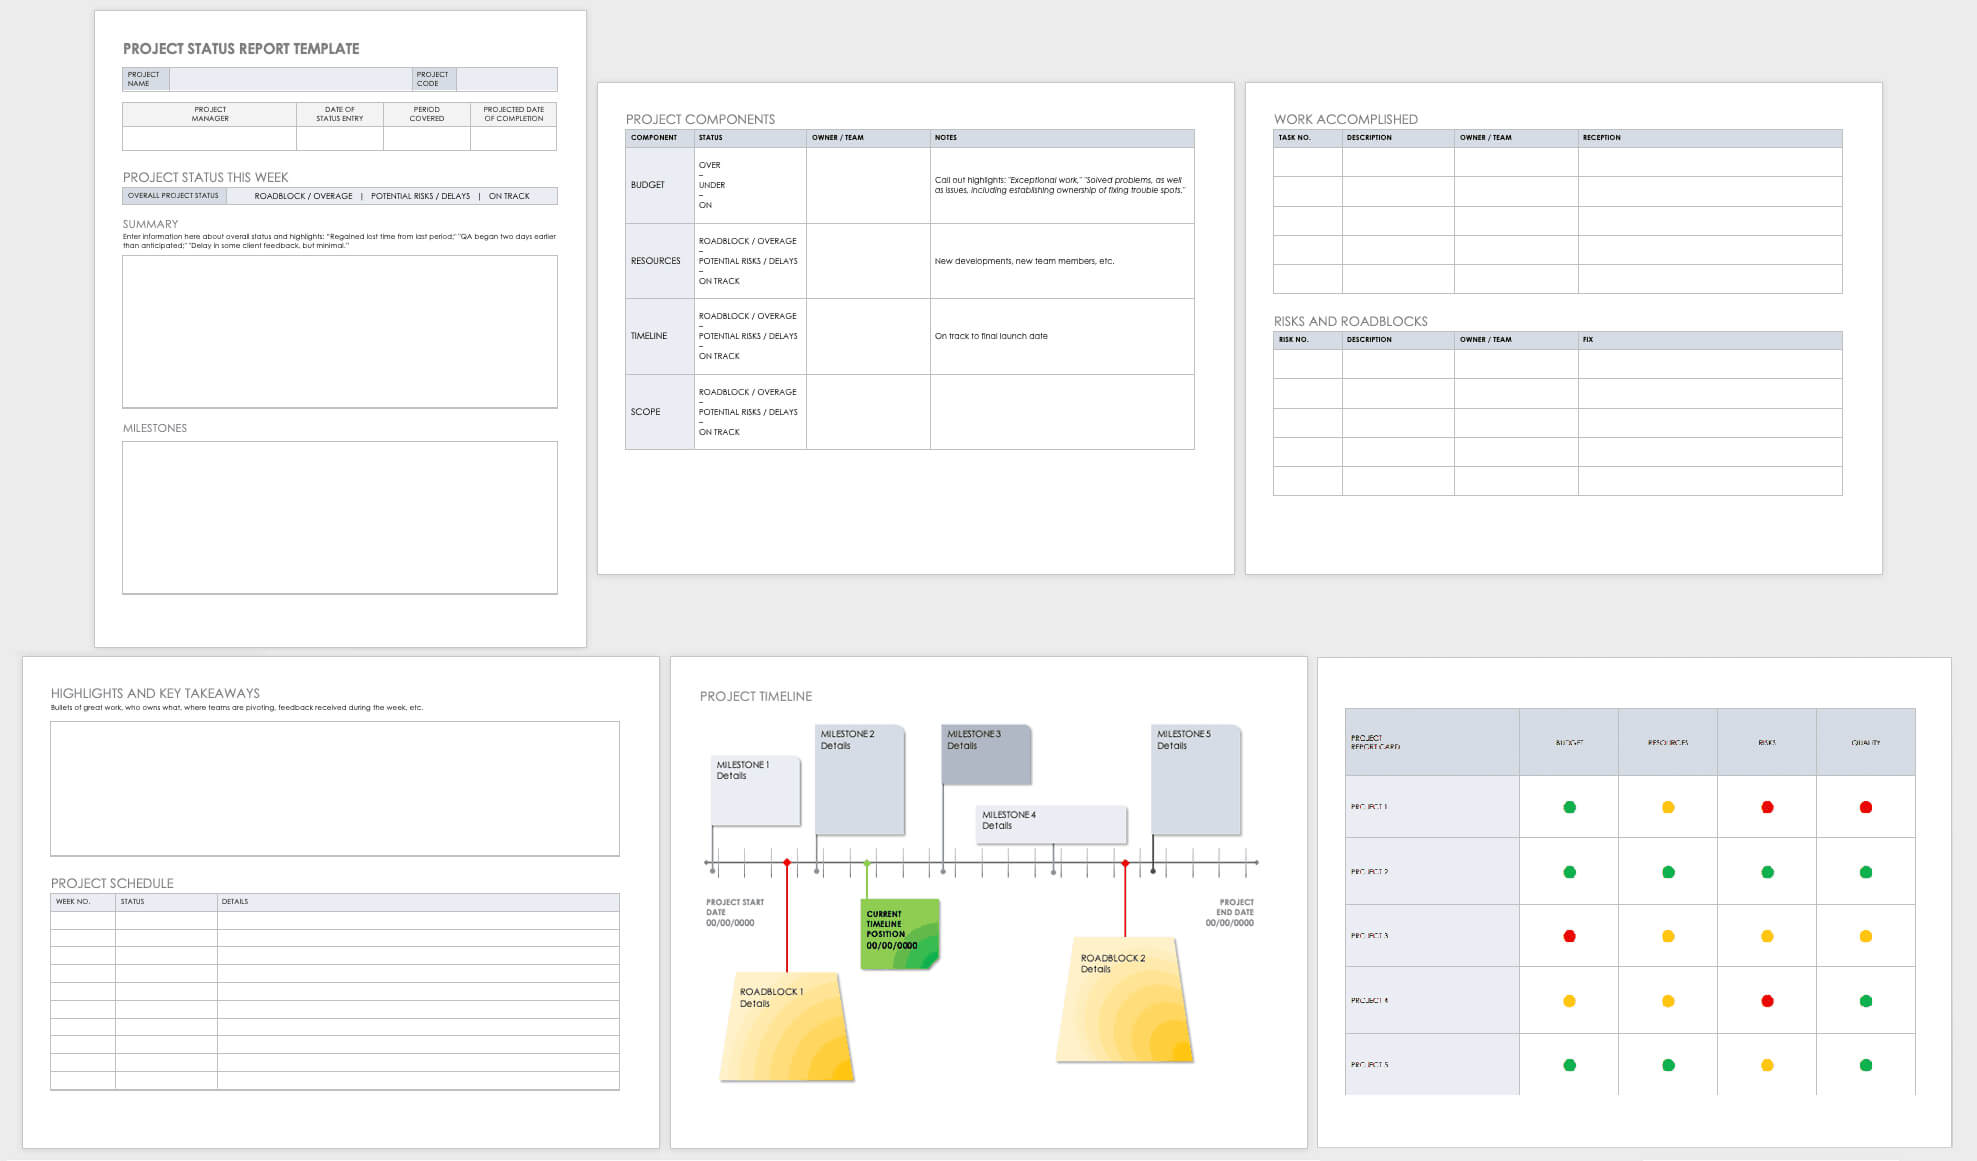 Free Project Report Templates | Smartsheet Intended For Project Management Final Report Template